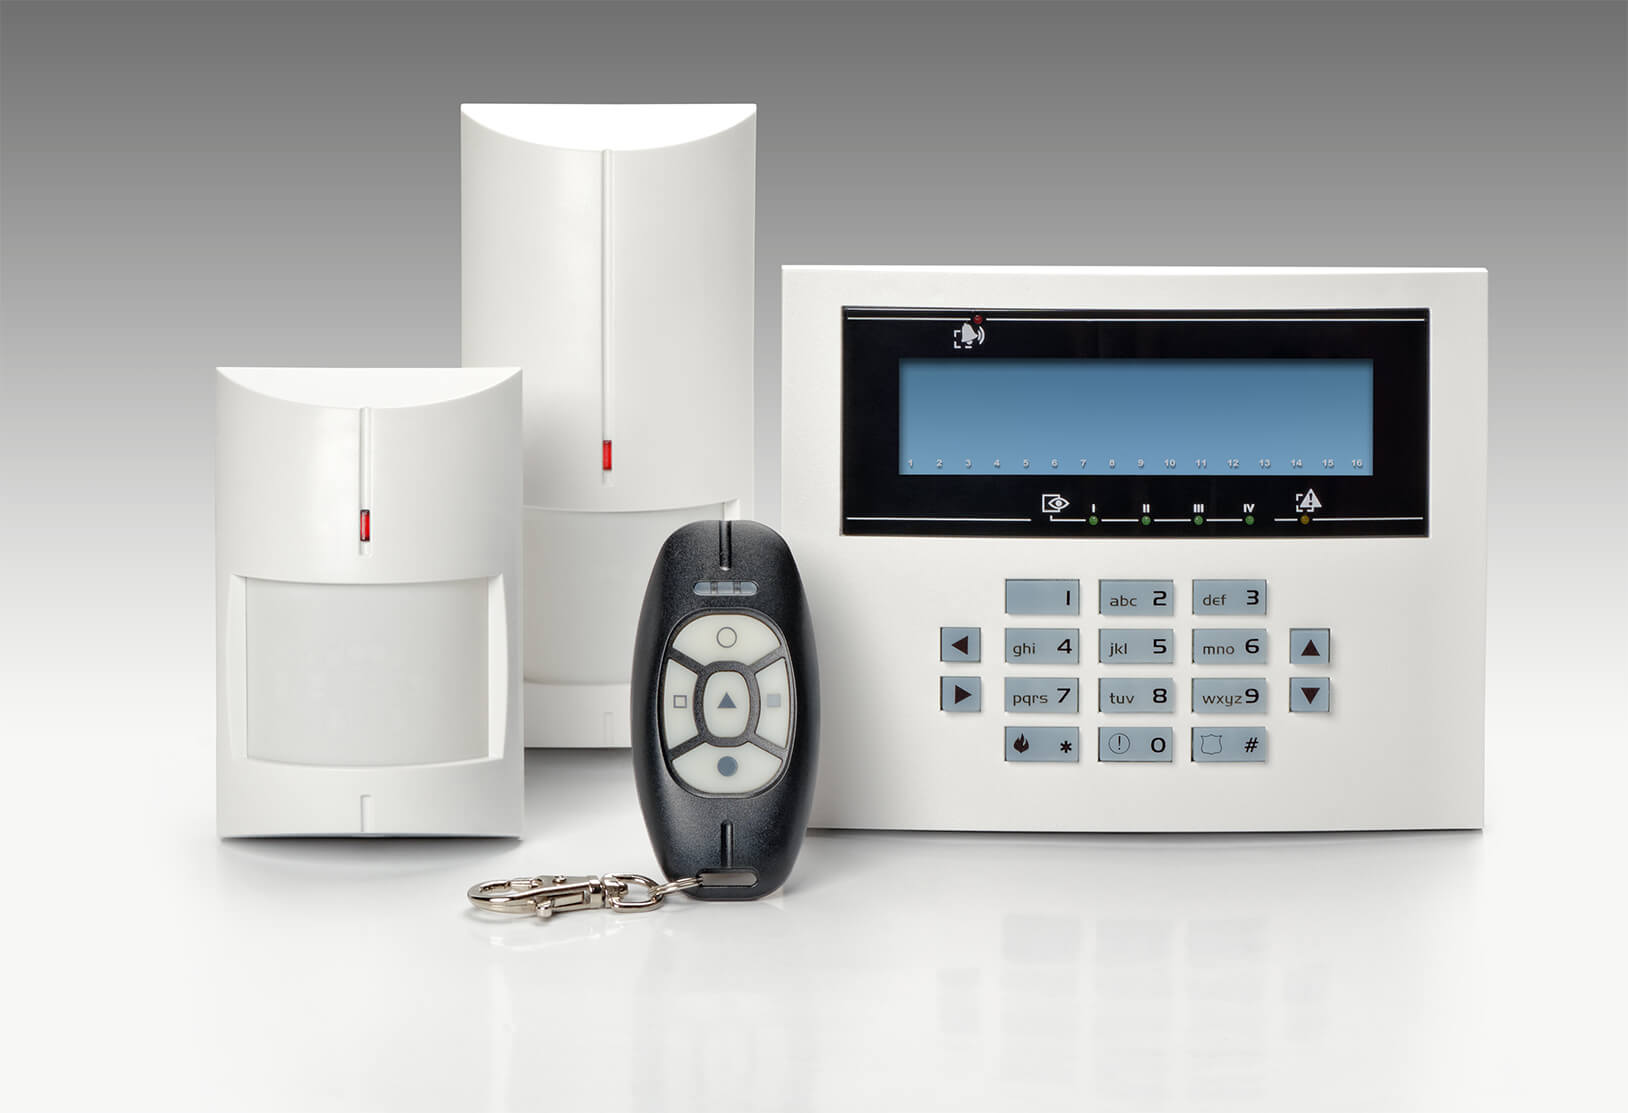 home NACOSS Approved {alarms} In Battersea SW12 - Local Battersea SW12 security company.Call 02078872244 - Dedicated to Safety & Security.Trusted by 1000's in Battersea SW12